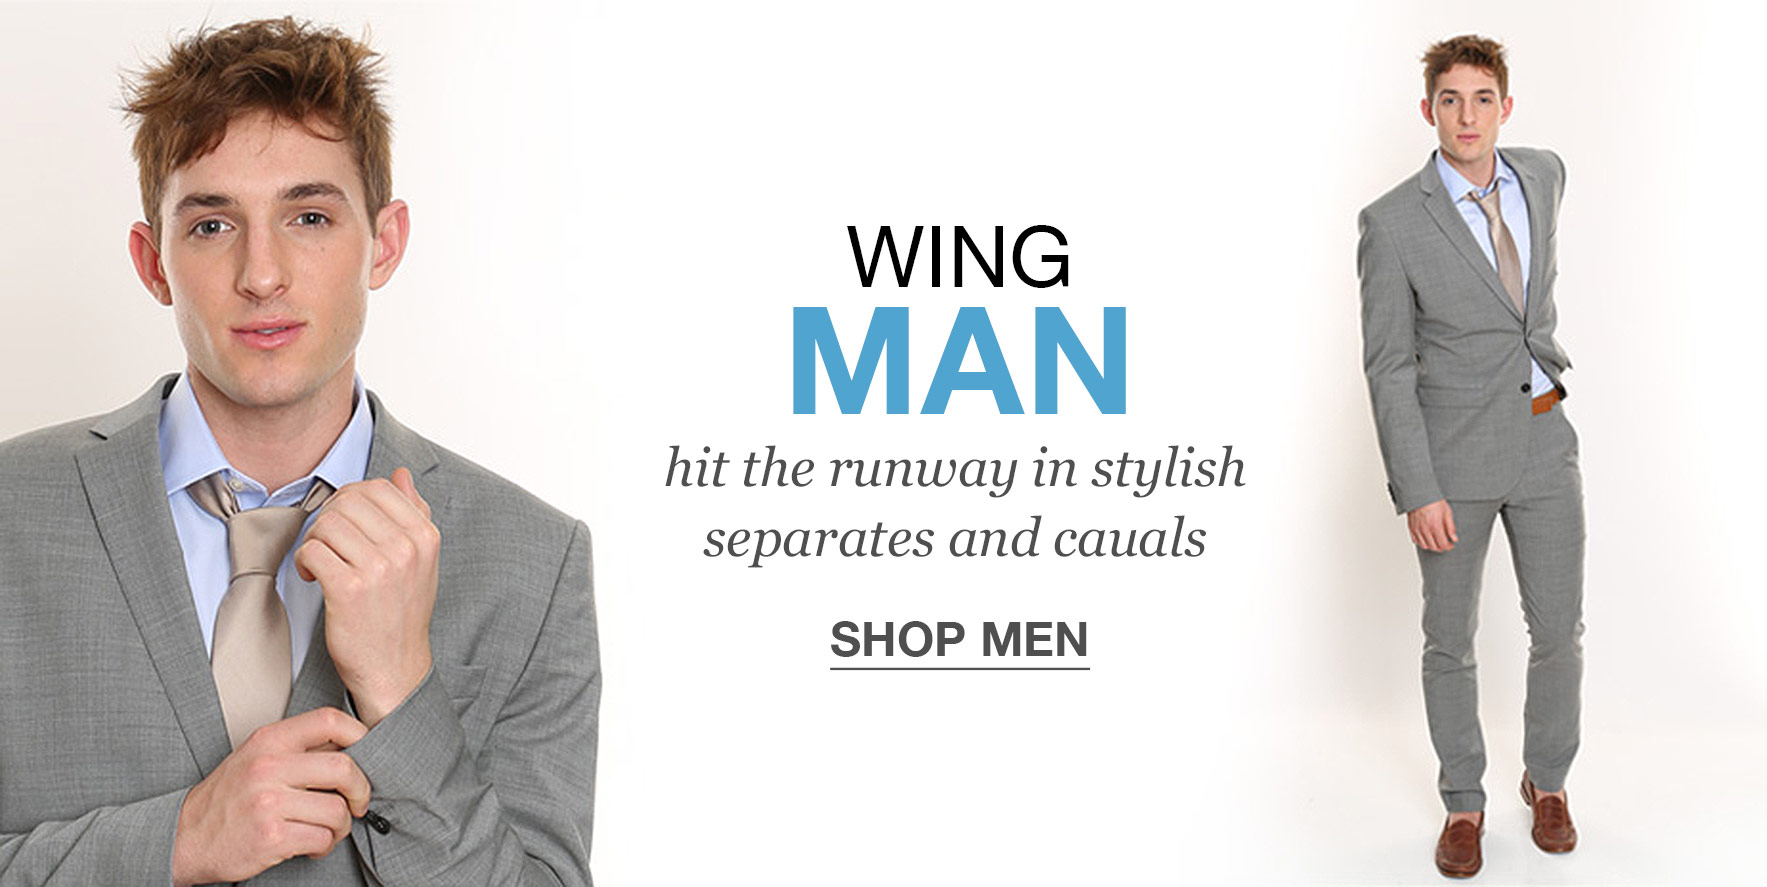 Wing man - hit the runway in stylish separates and casuals - Click to Shop Man